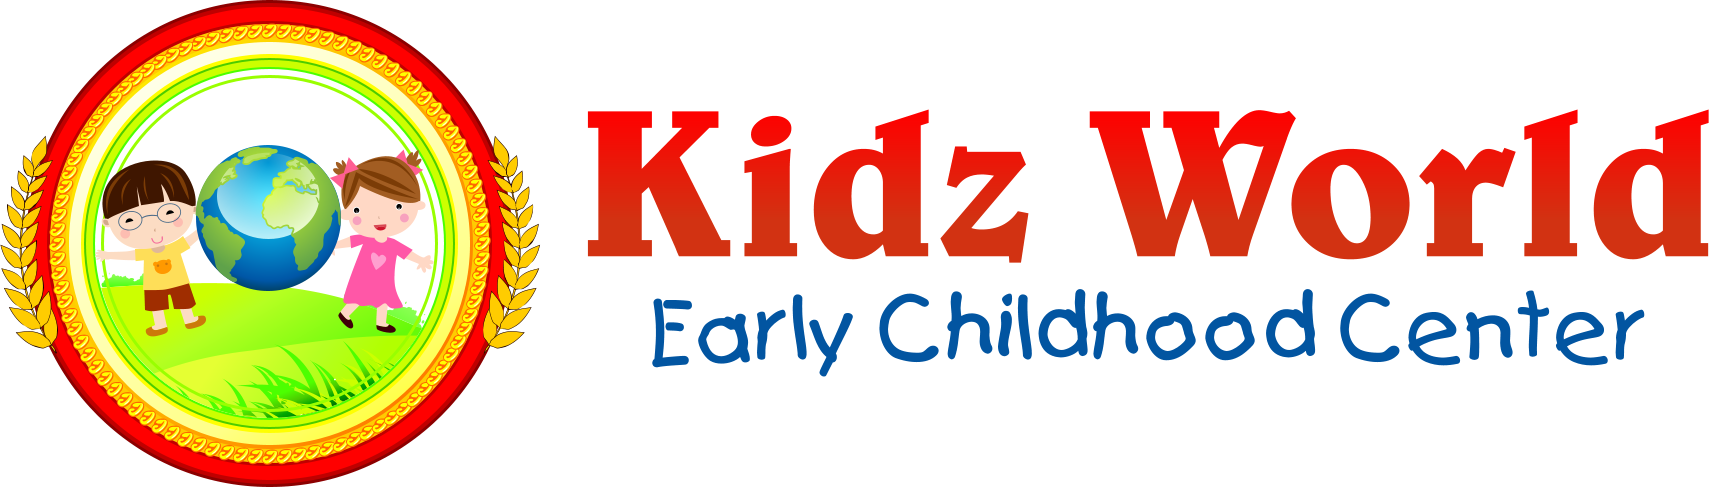 Kidz World Early Childhood Center